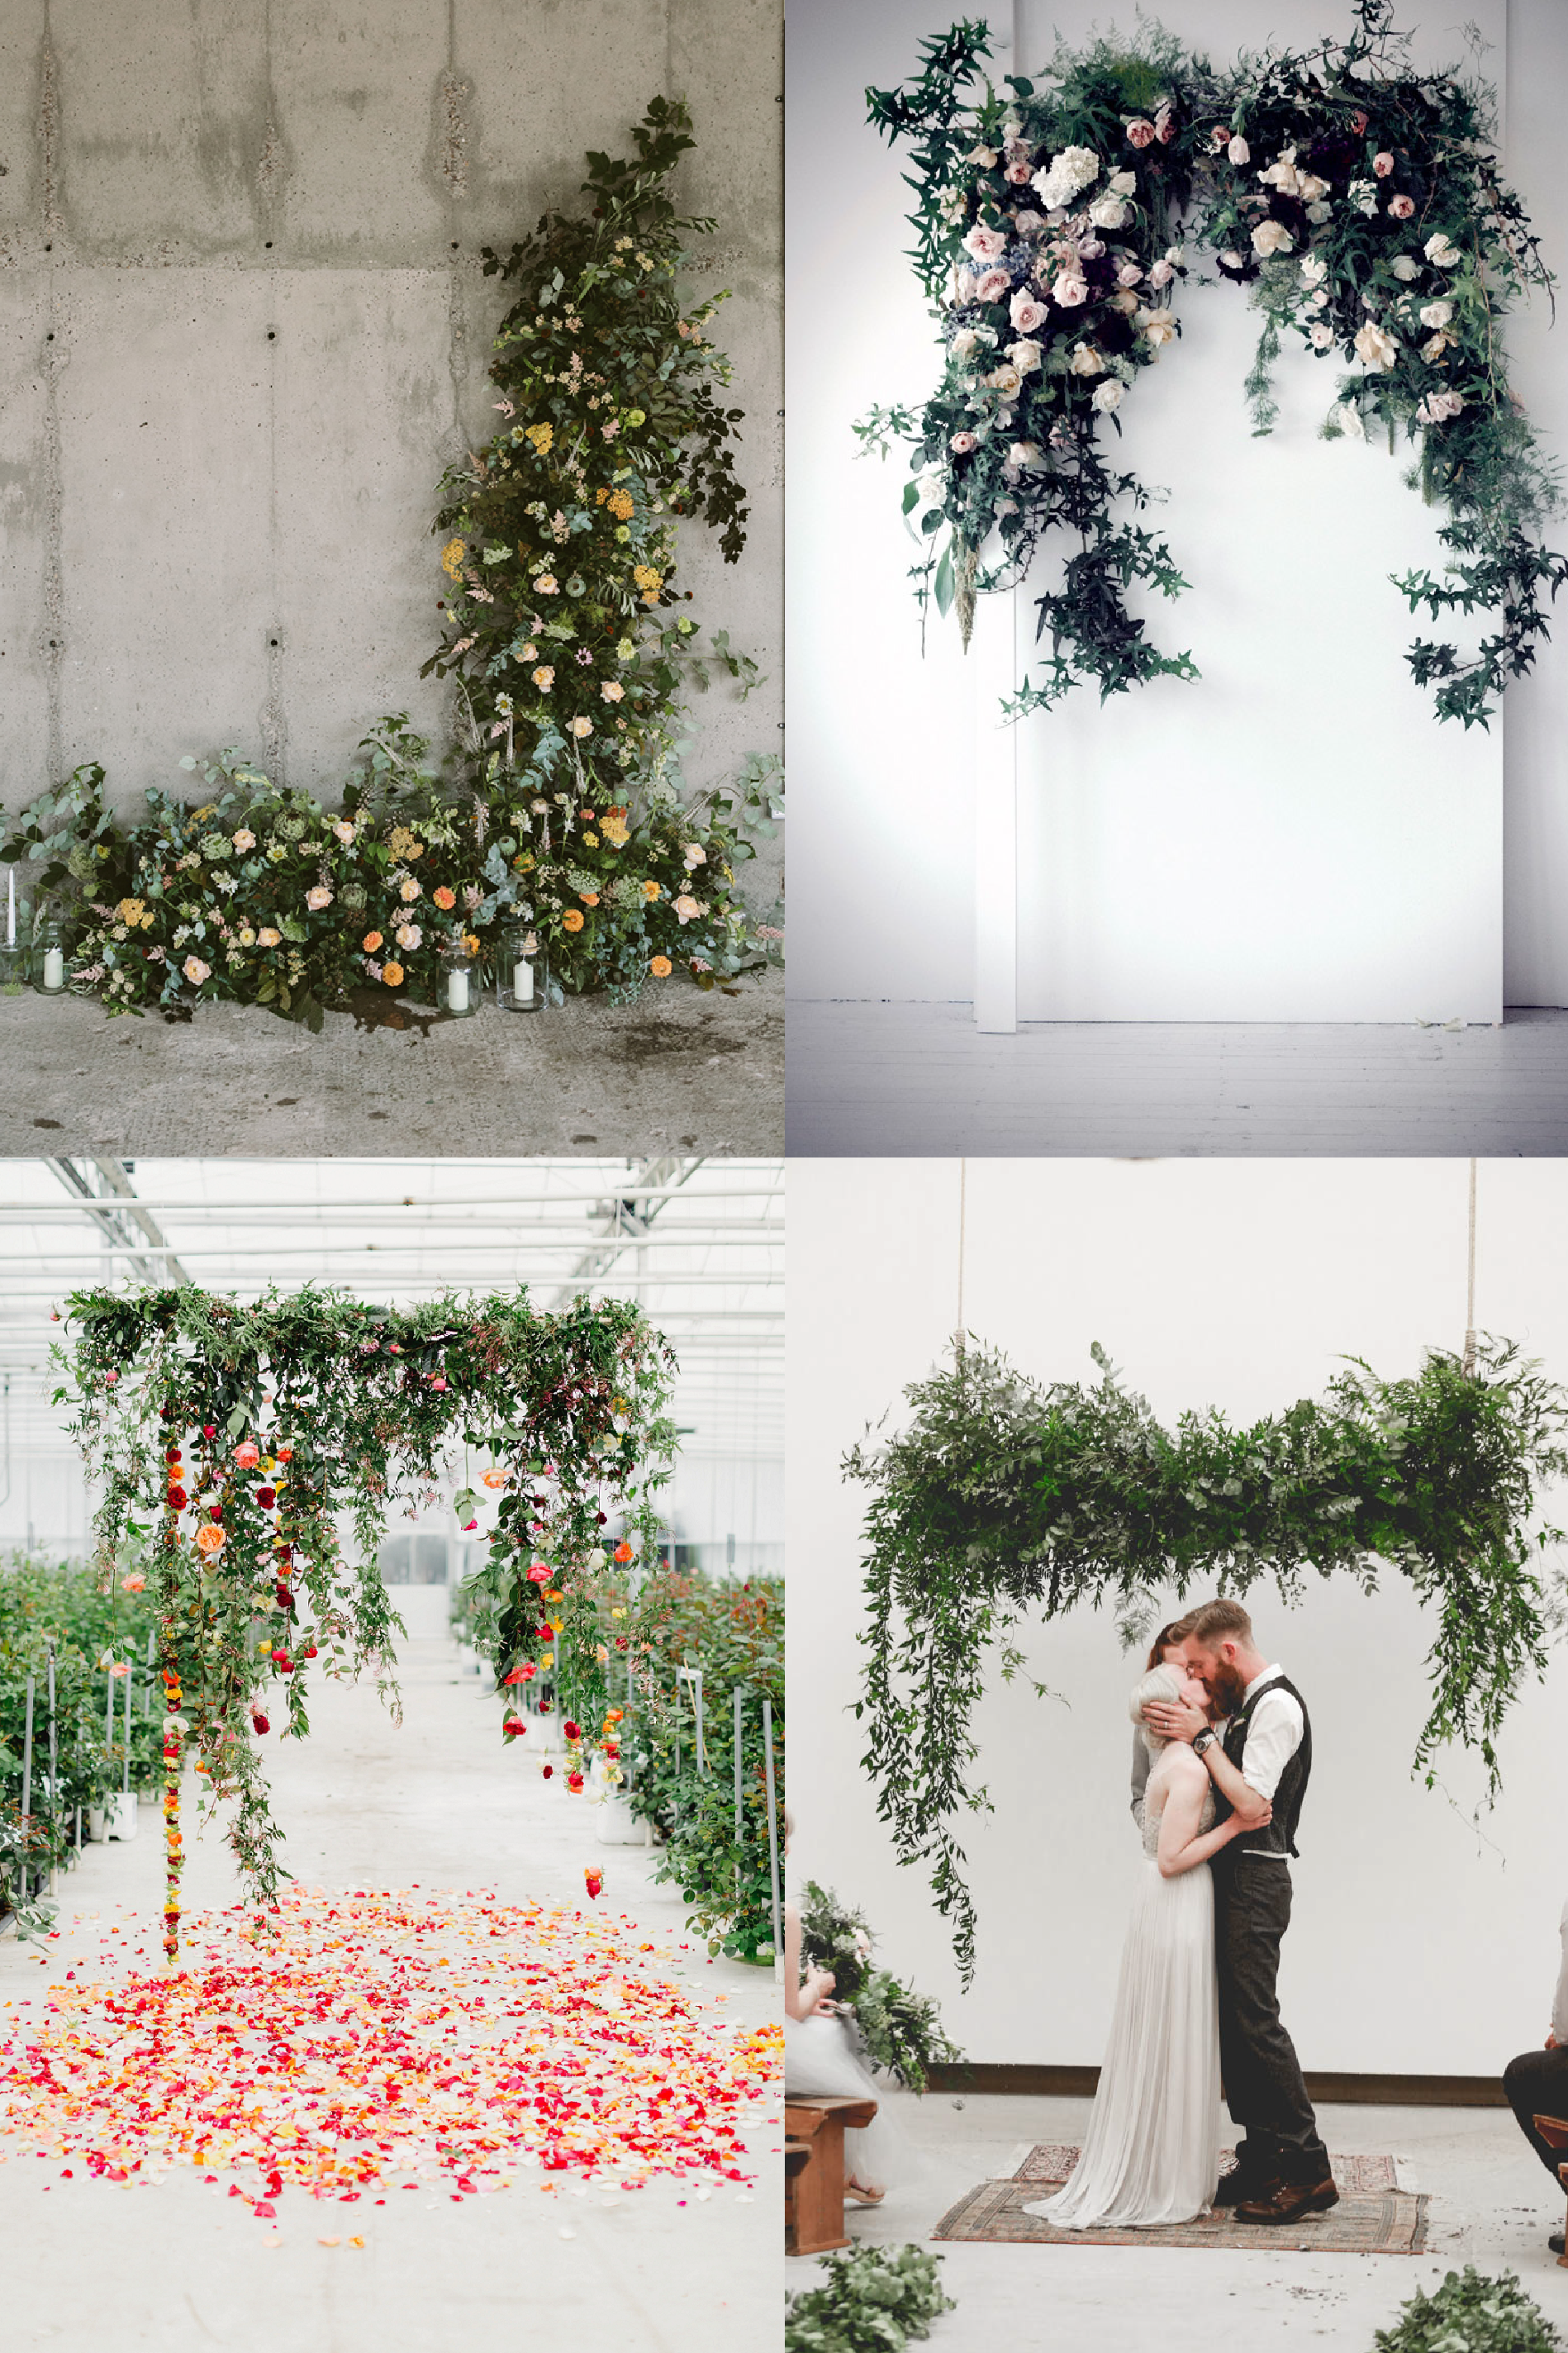 FROM CLOCKWISE, FROM TOP LEFT: Floral Design by  Anna Potter , Photo by    Sam Bisso  and Floral Design by  Fleur McHarg , Floral Design by   Isherwood and co  and Photo by  Matt and Jess , Floral Design by  Honeysuckle Rose  and Photo by   Courtney Horwood Photography .